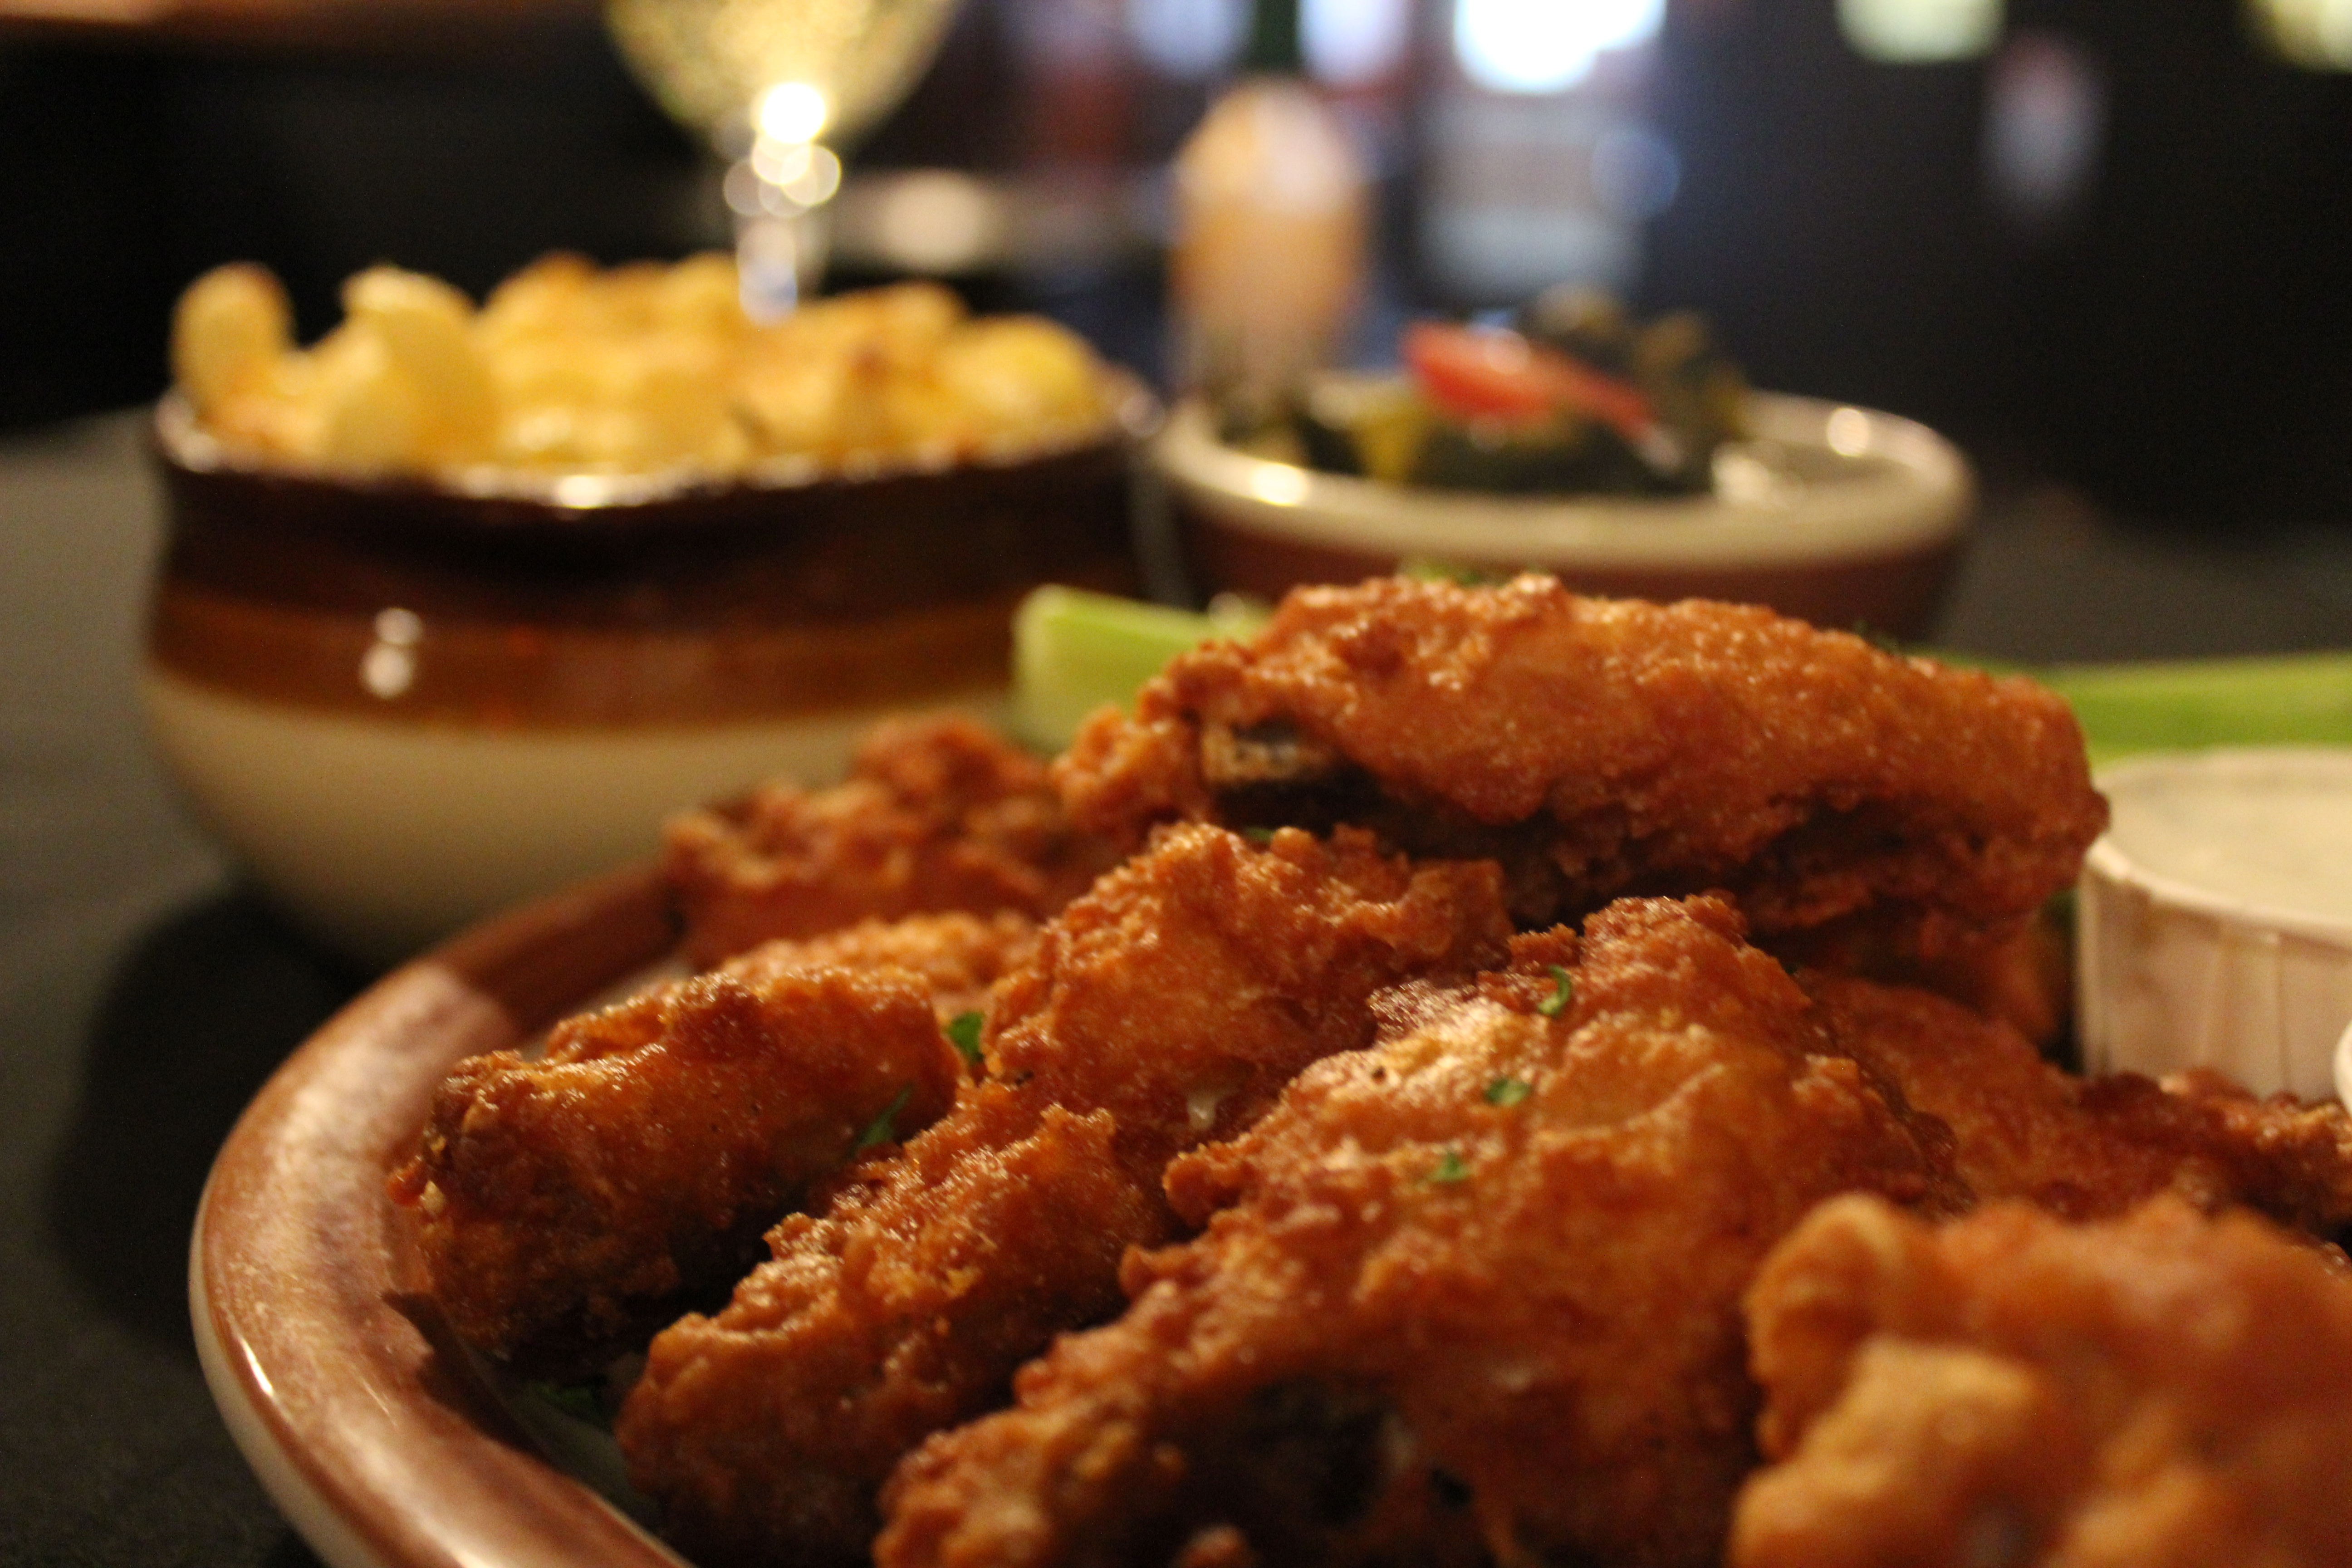 Chicken wings and chips - 1 part 4